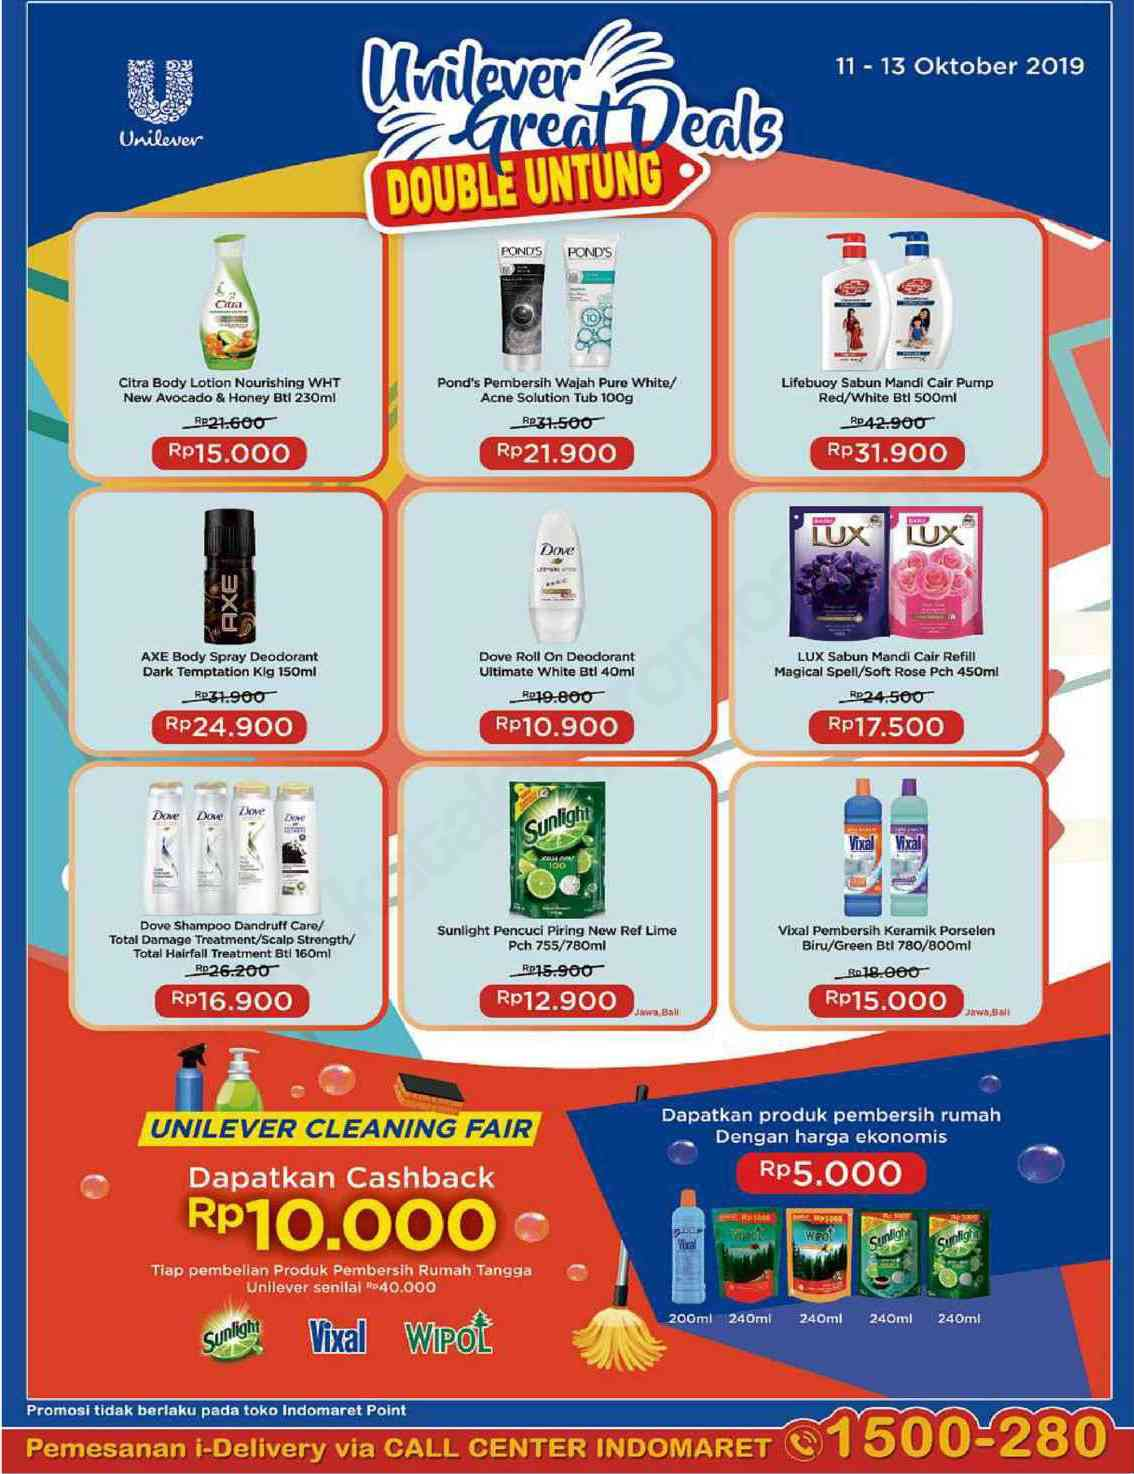 Indomaret Unilever Great Deals Periode 11-13 Oktober 2019